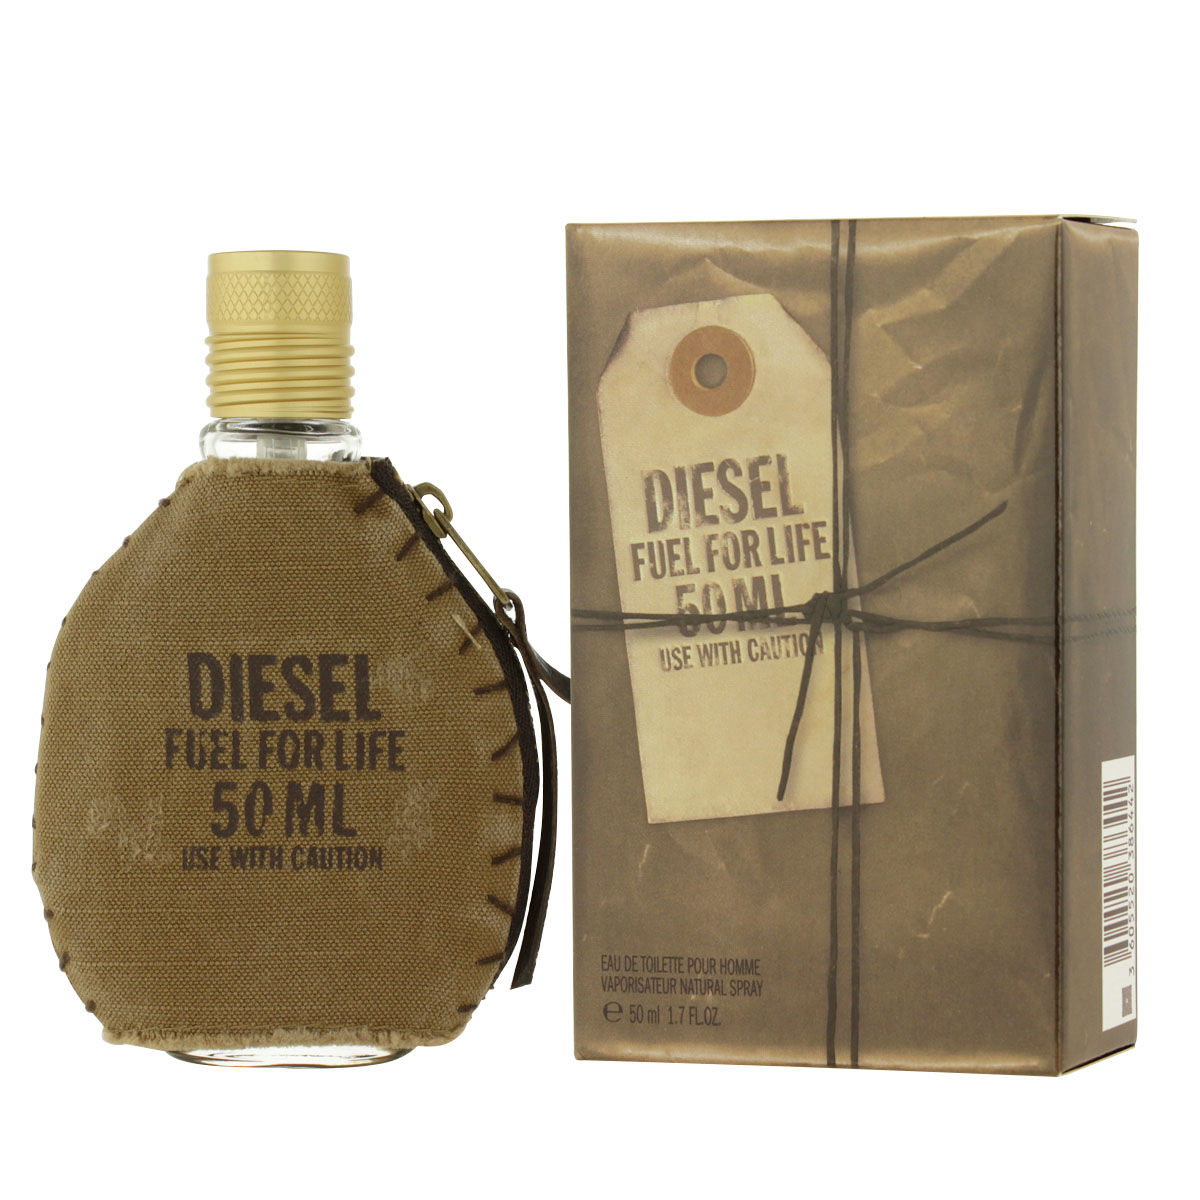 Diesel Fuel for Life Homme EDT 50 ml M